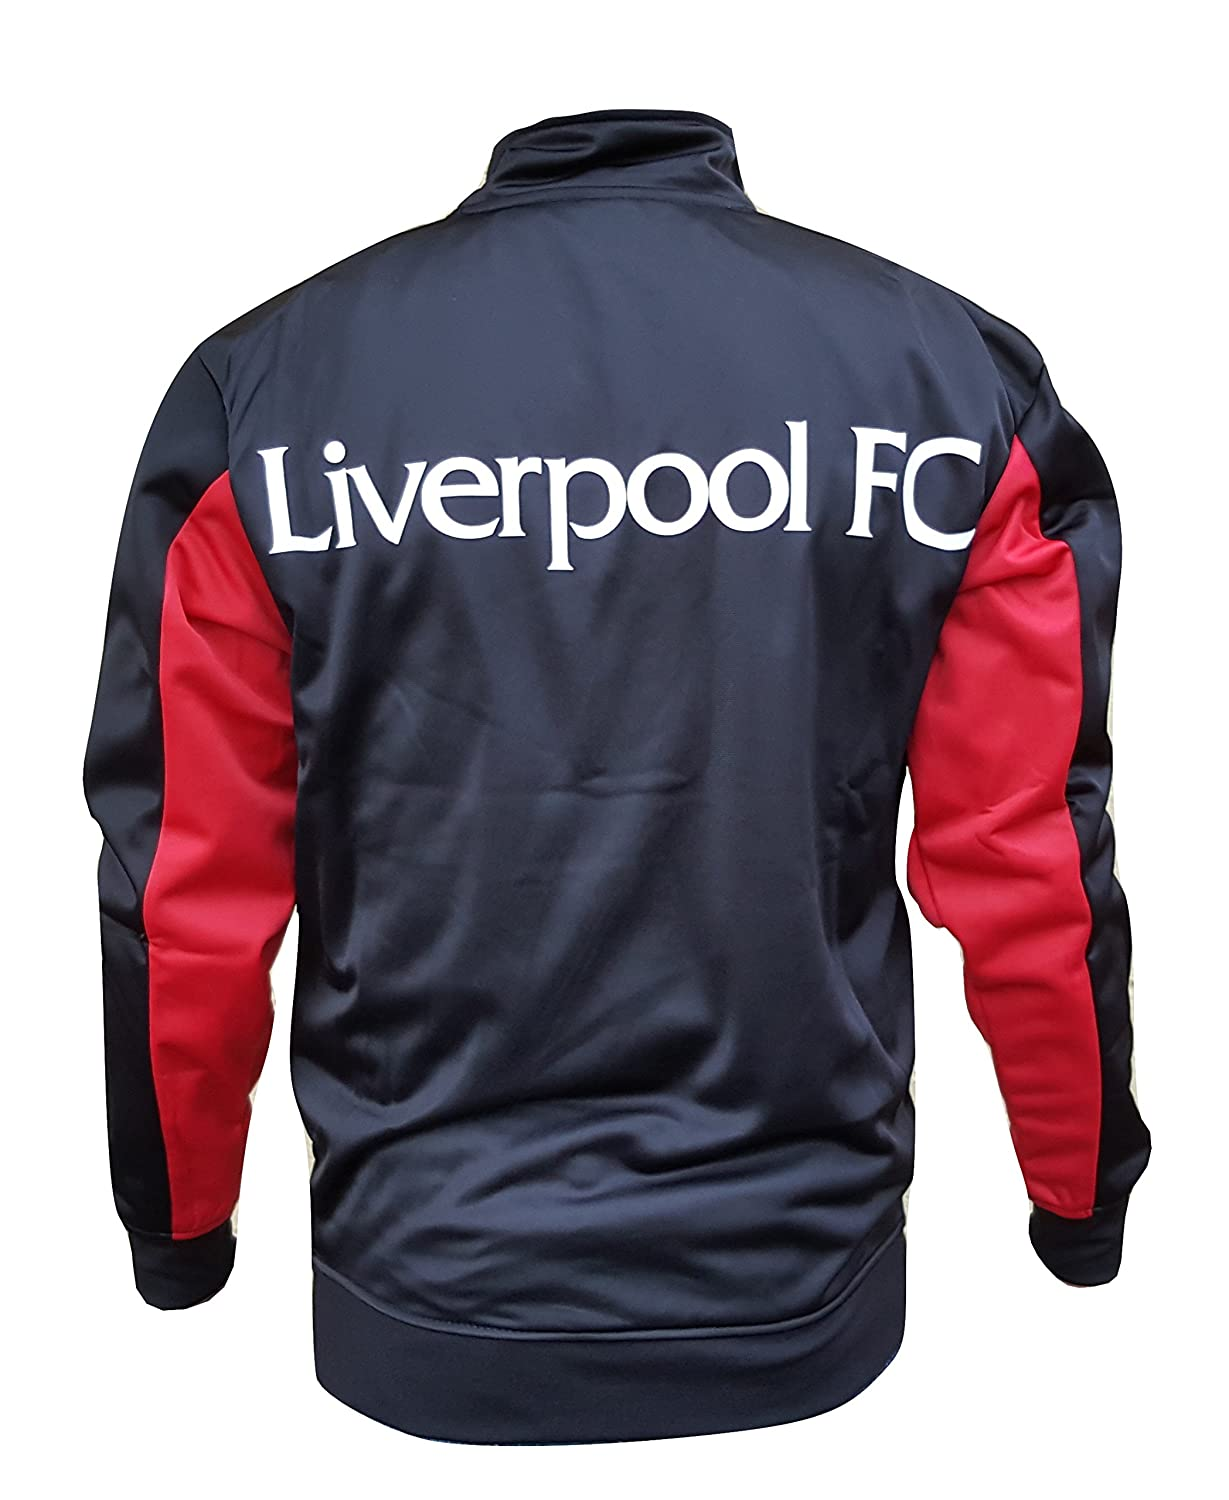 Liverpool FC Adult Track Jacket Warm Up Soccer Soccer Football